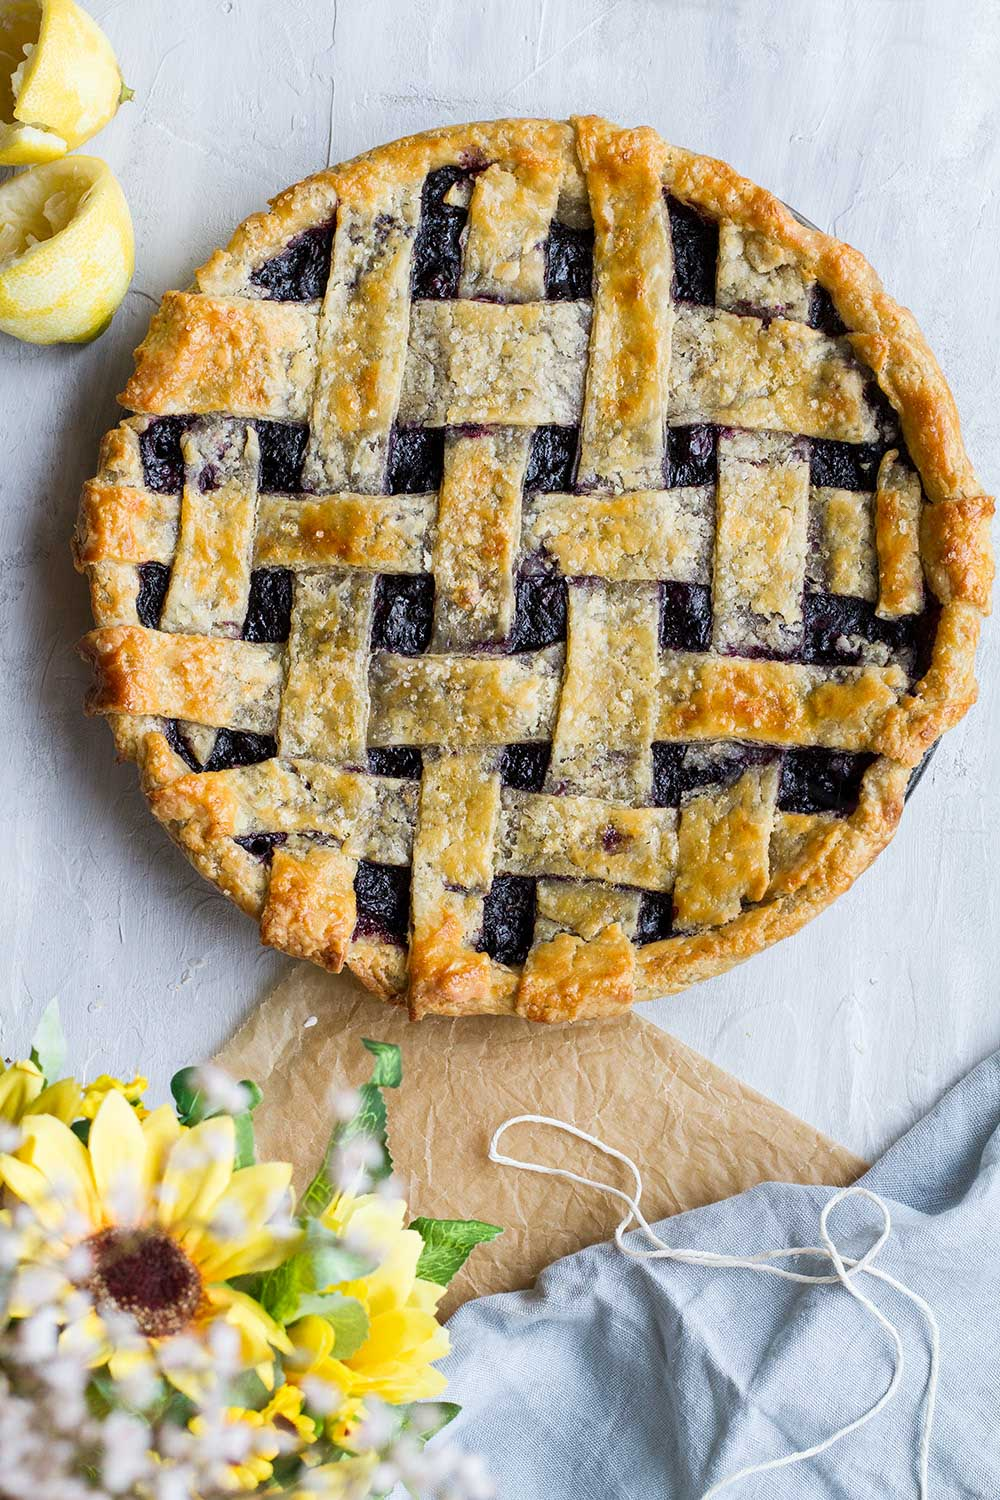 Pie with lattice top seen from above.